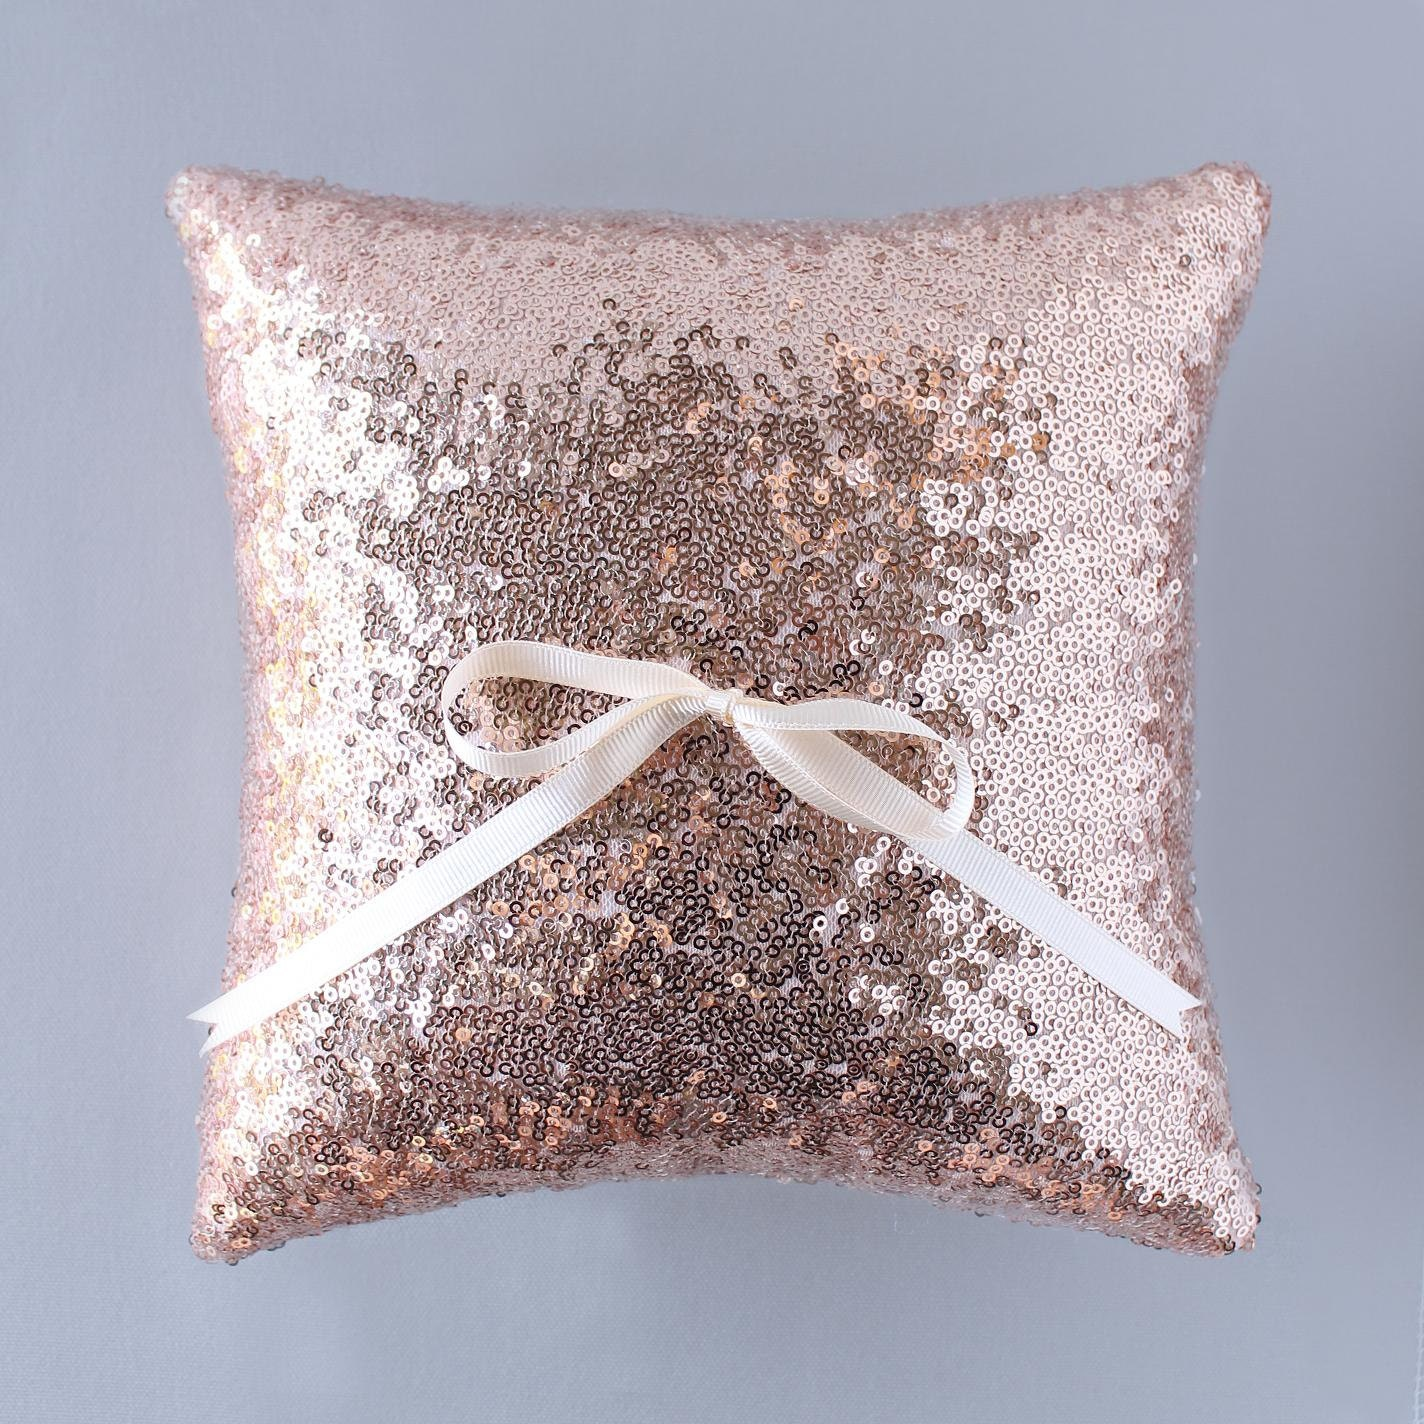 ring bearer pillow rose gold glittering sequin 10 in x 10 in. Black Bedroom Furniture Sets. Home Design Ideas